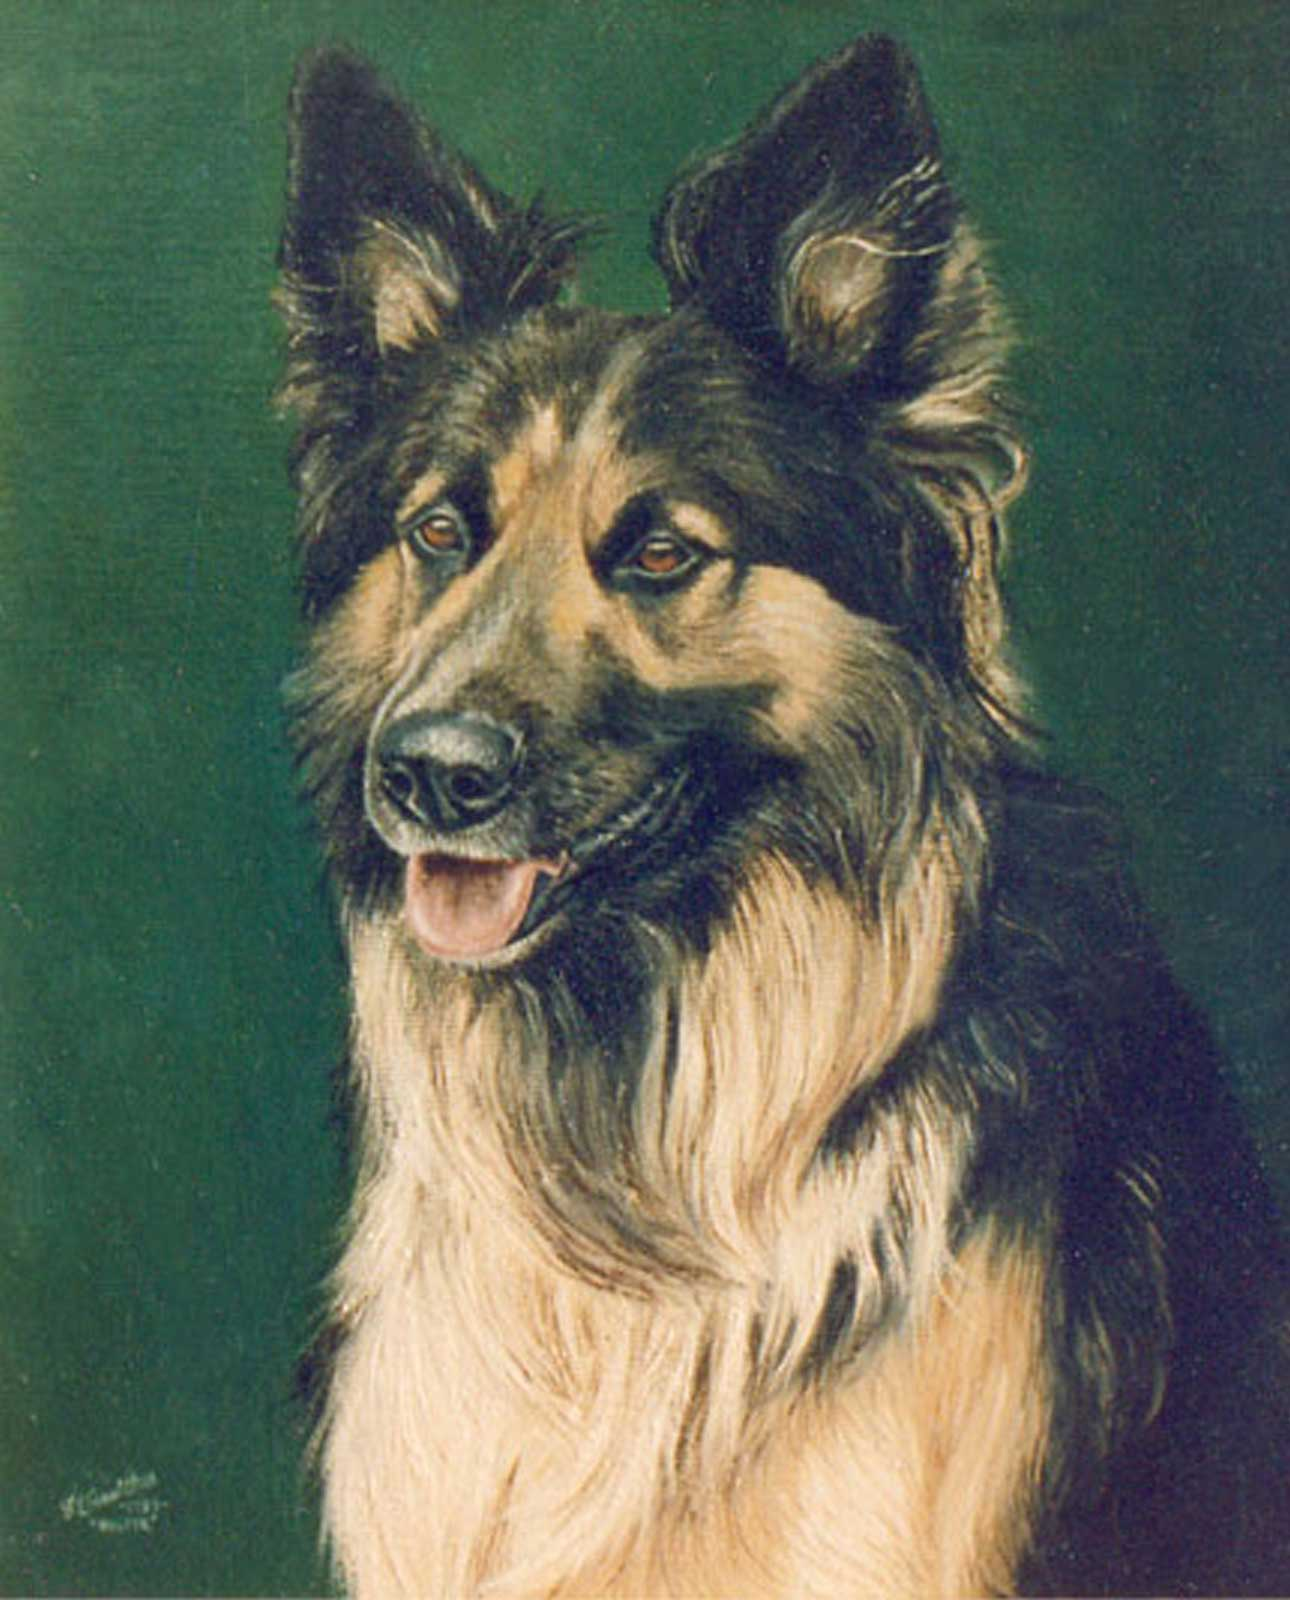 German Shepherd dog portrait oil painting on canvas